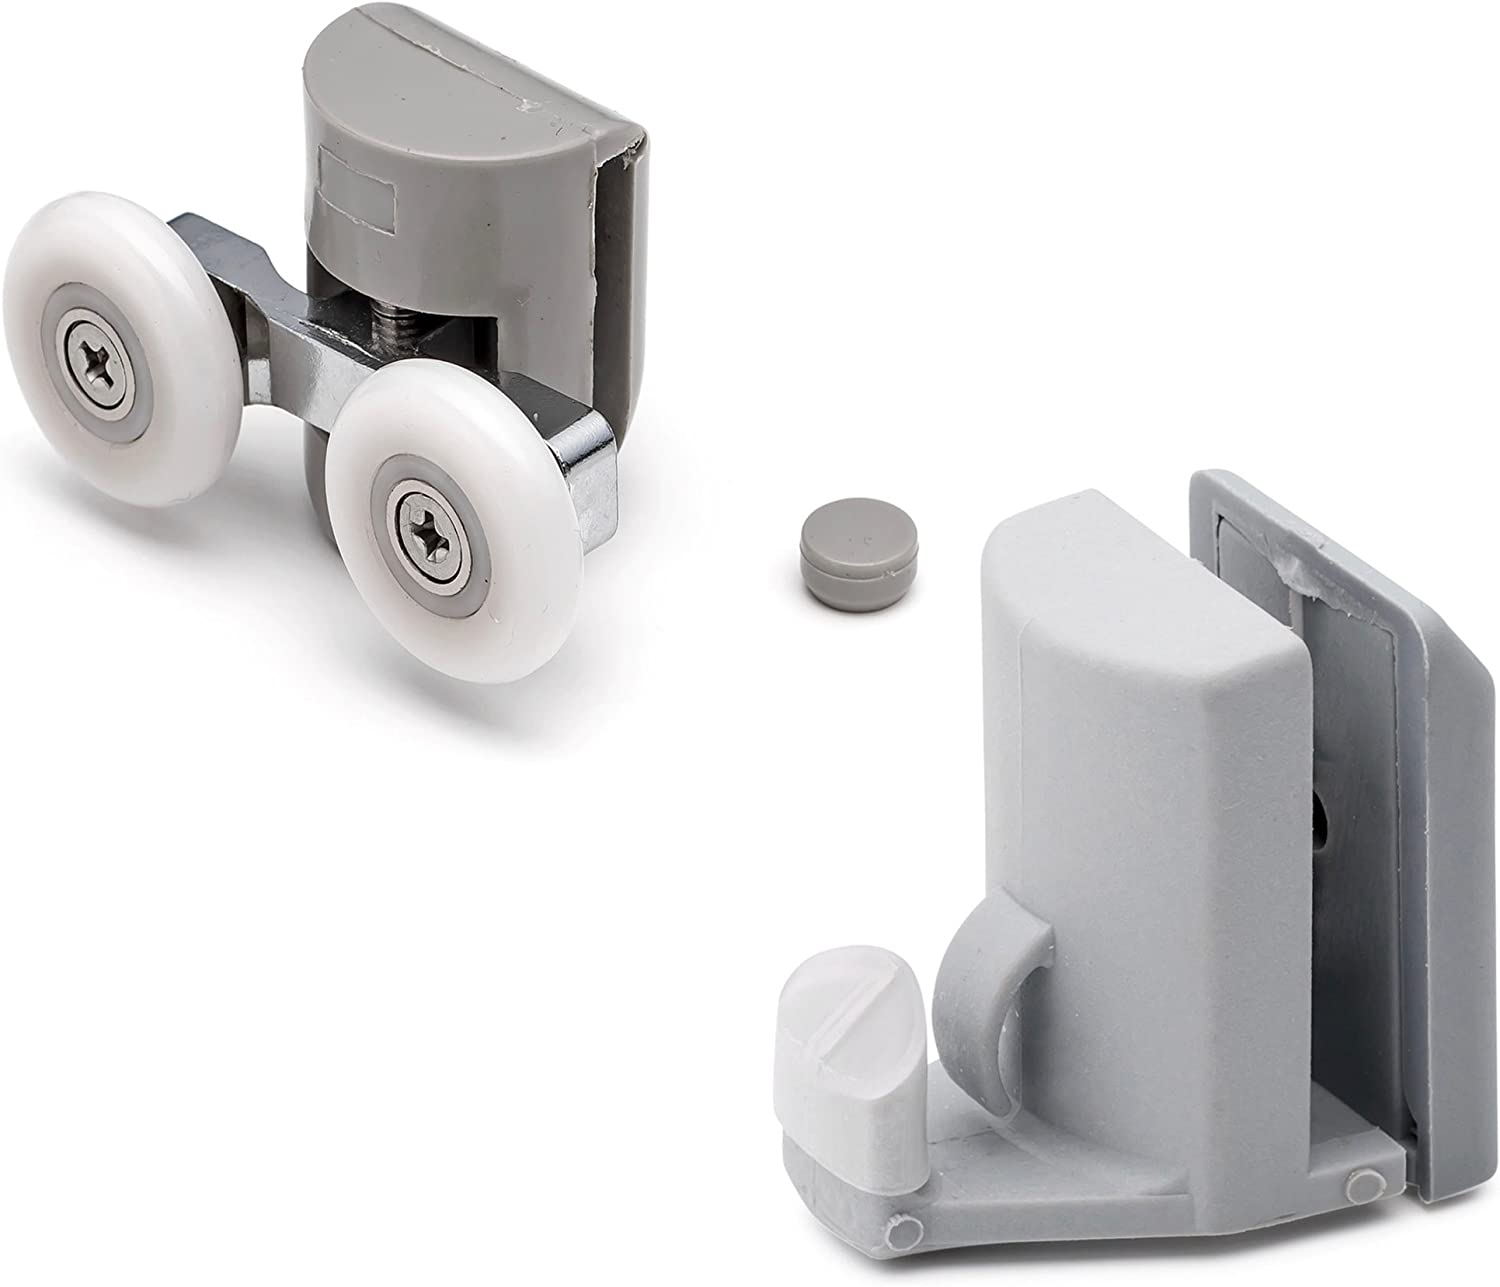 Set of 4 Shower Door Rollers Runners We OFFer at cheap prices Di Wheels [Alternative dealer] 25mm Hooks Guides